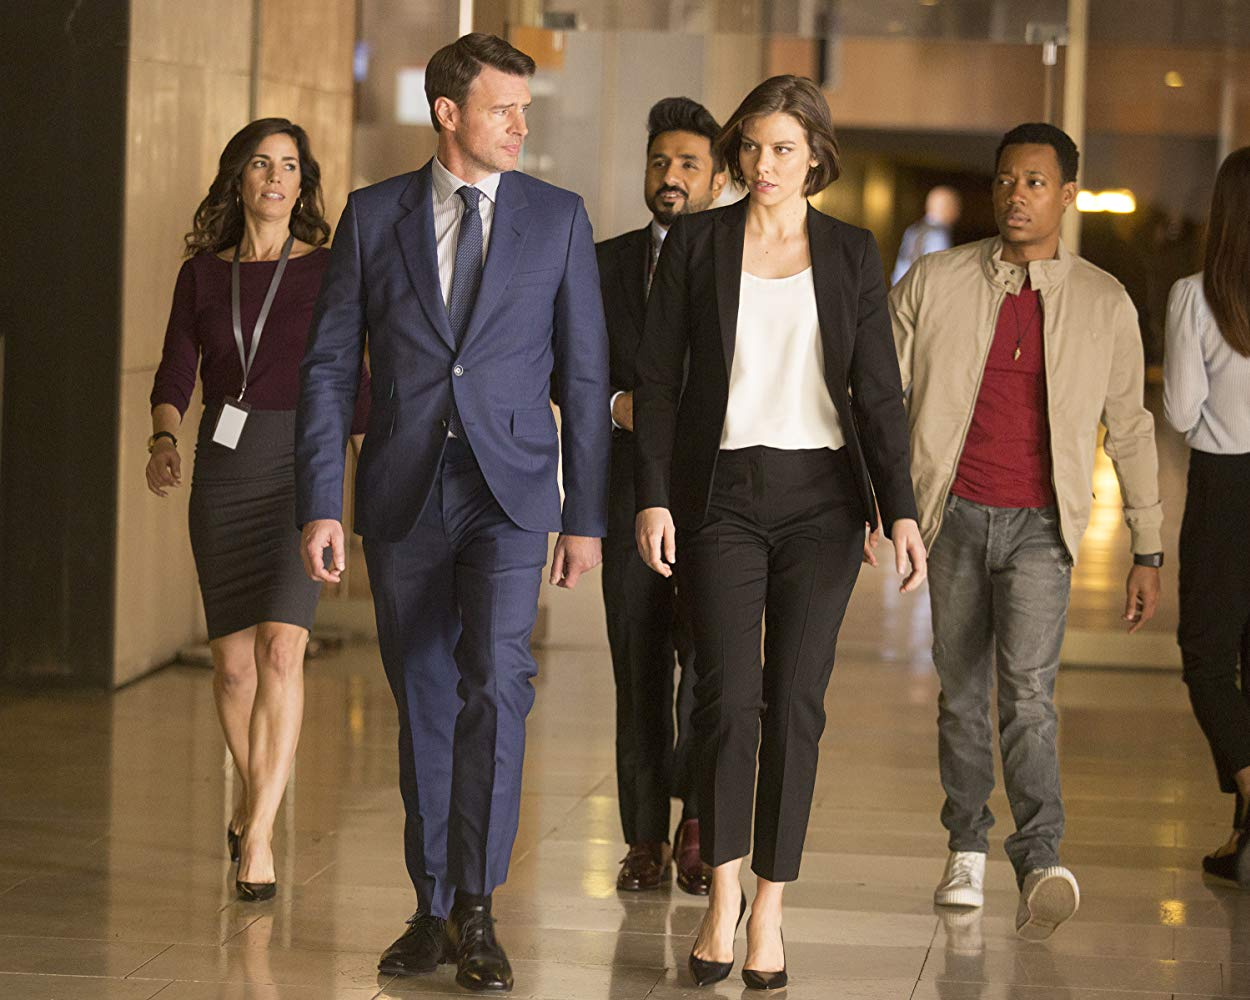 Ana Ortiz, Scott Foley, Vir Das, Lauren Cohan, and Tyler James Williams in 'Whiskey Cavalier'. (Source: IMDB)